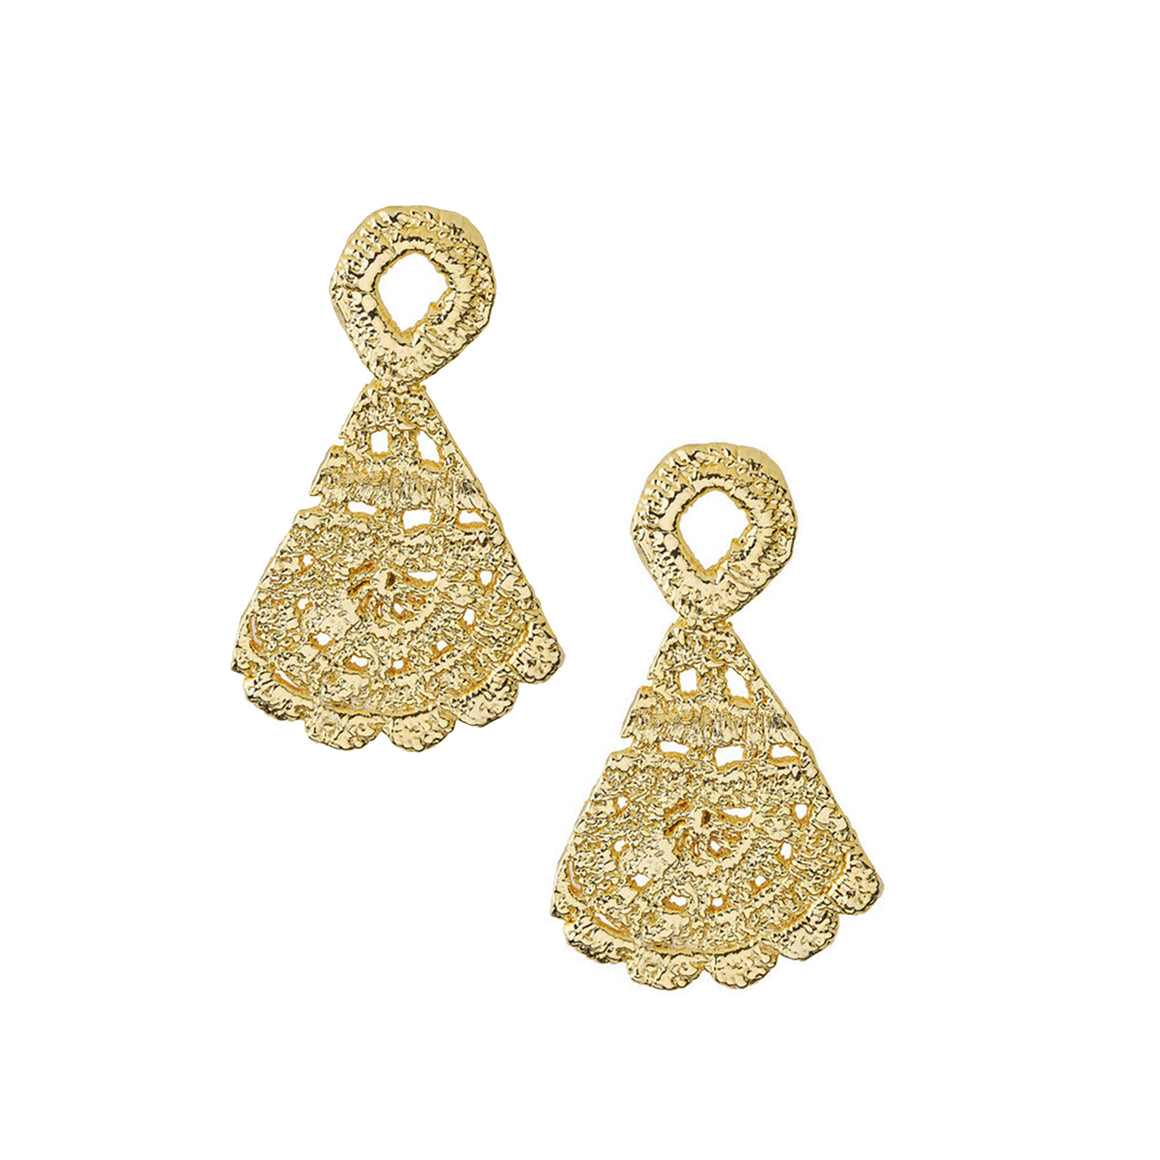 Morgana Earrings in Gold Design by Alexandra Koumba